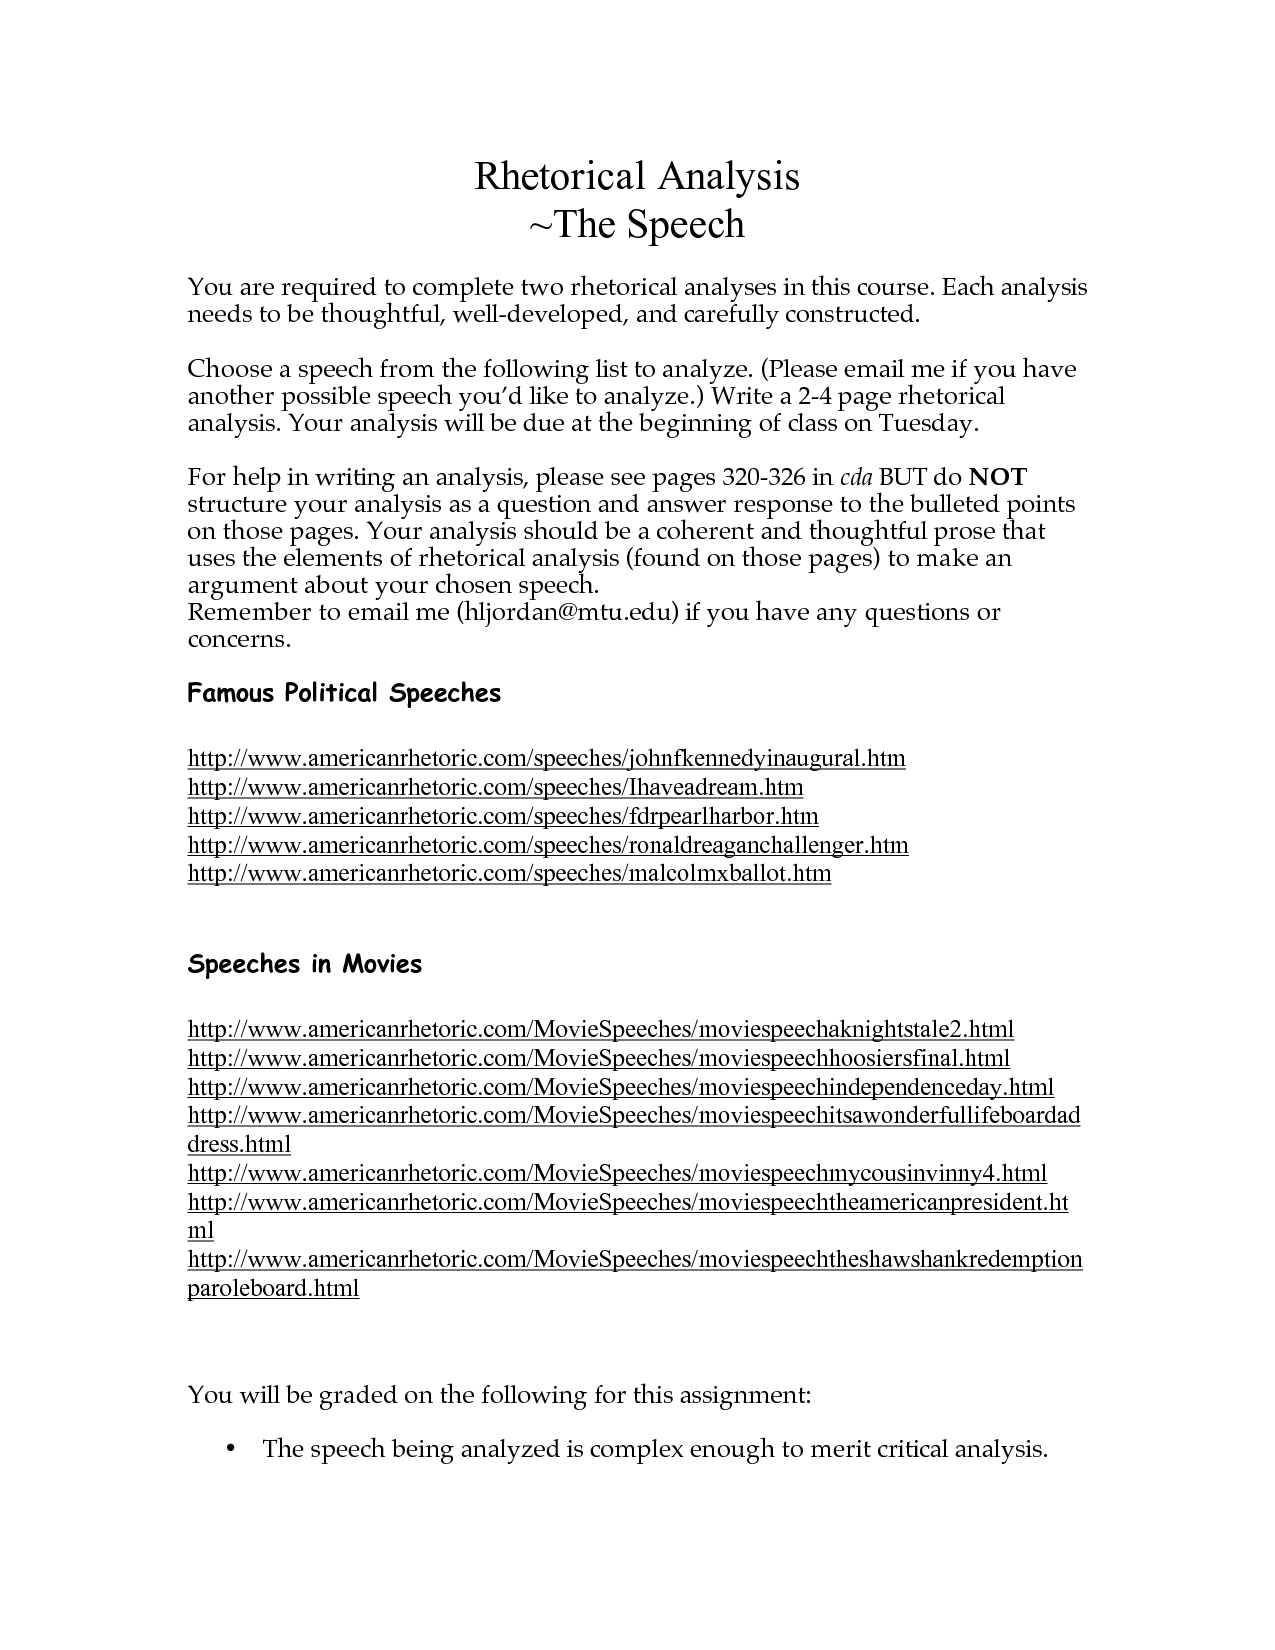 Speech Analysis Template  Rhetorical Analysis The Speech  Ap